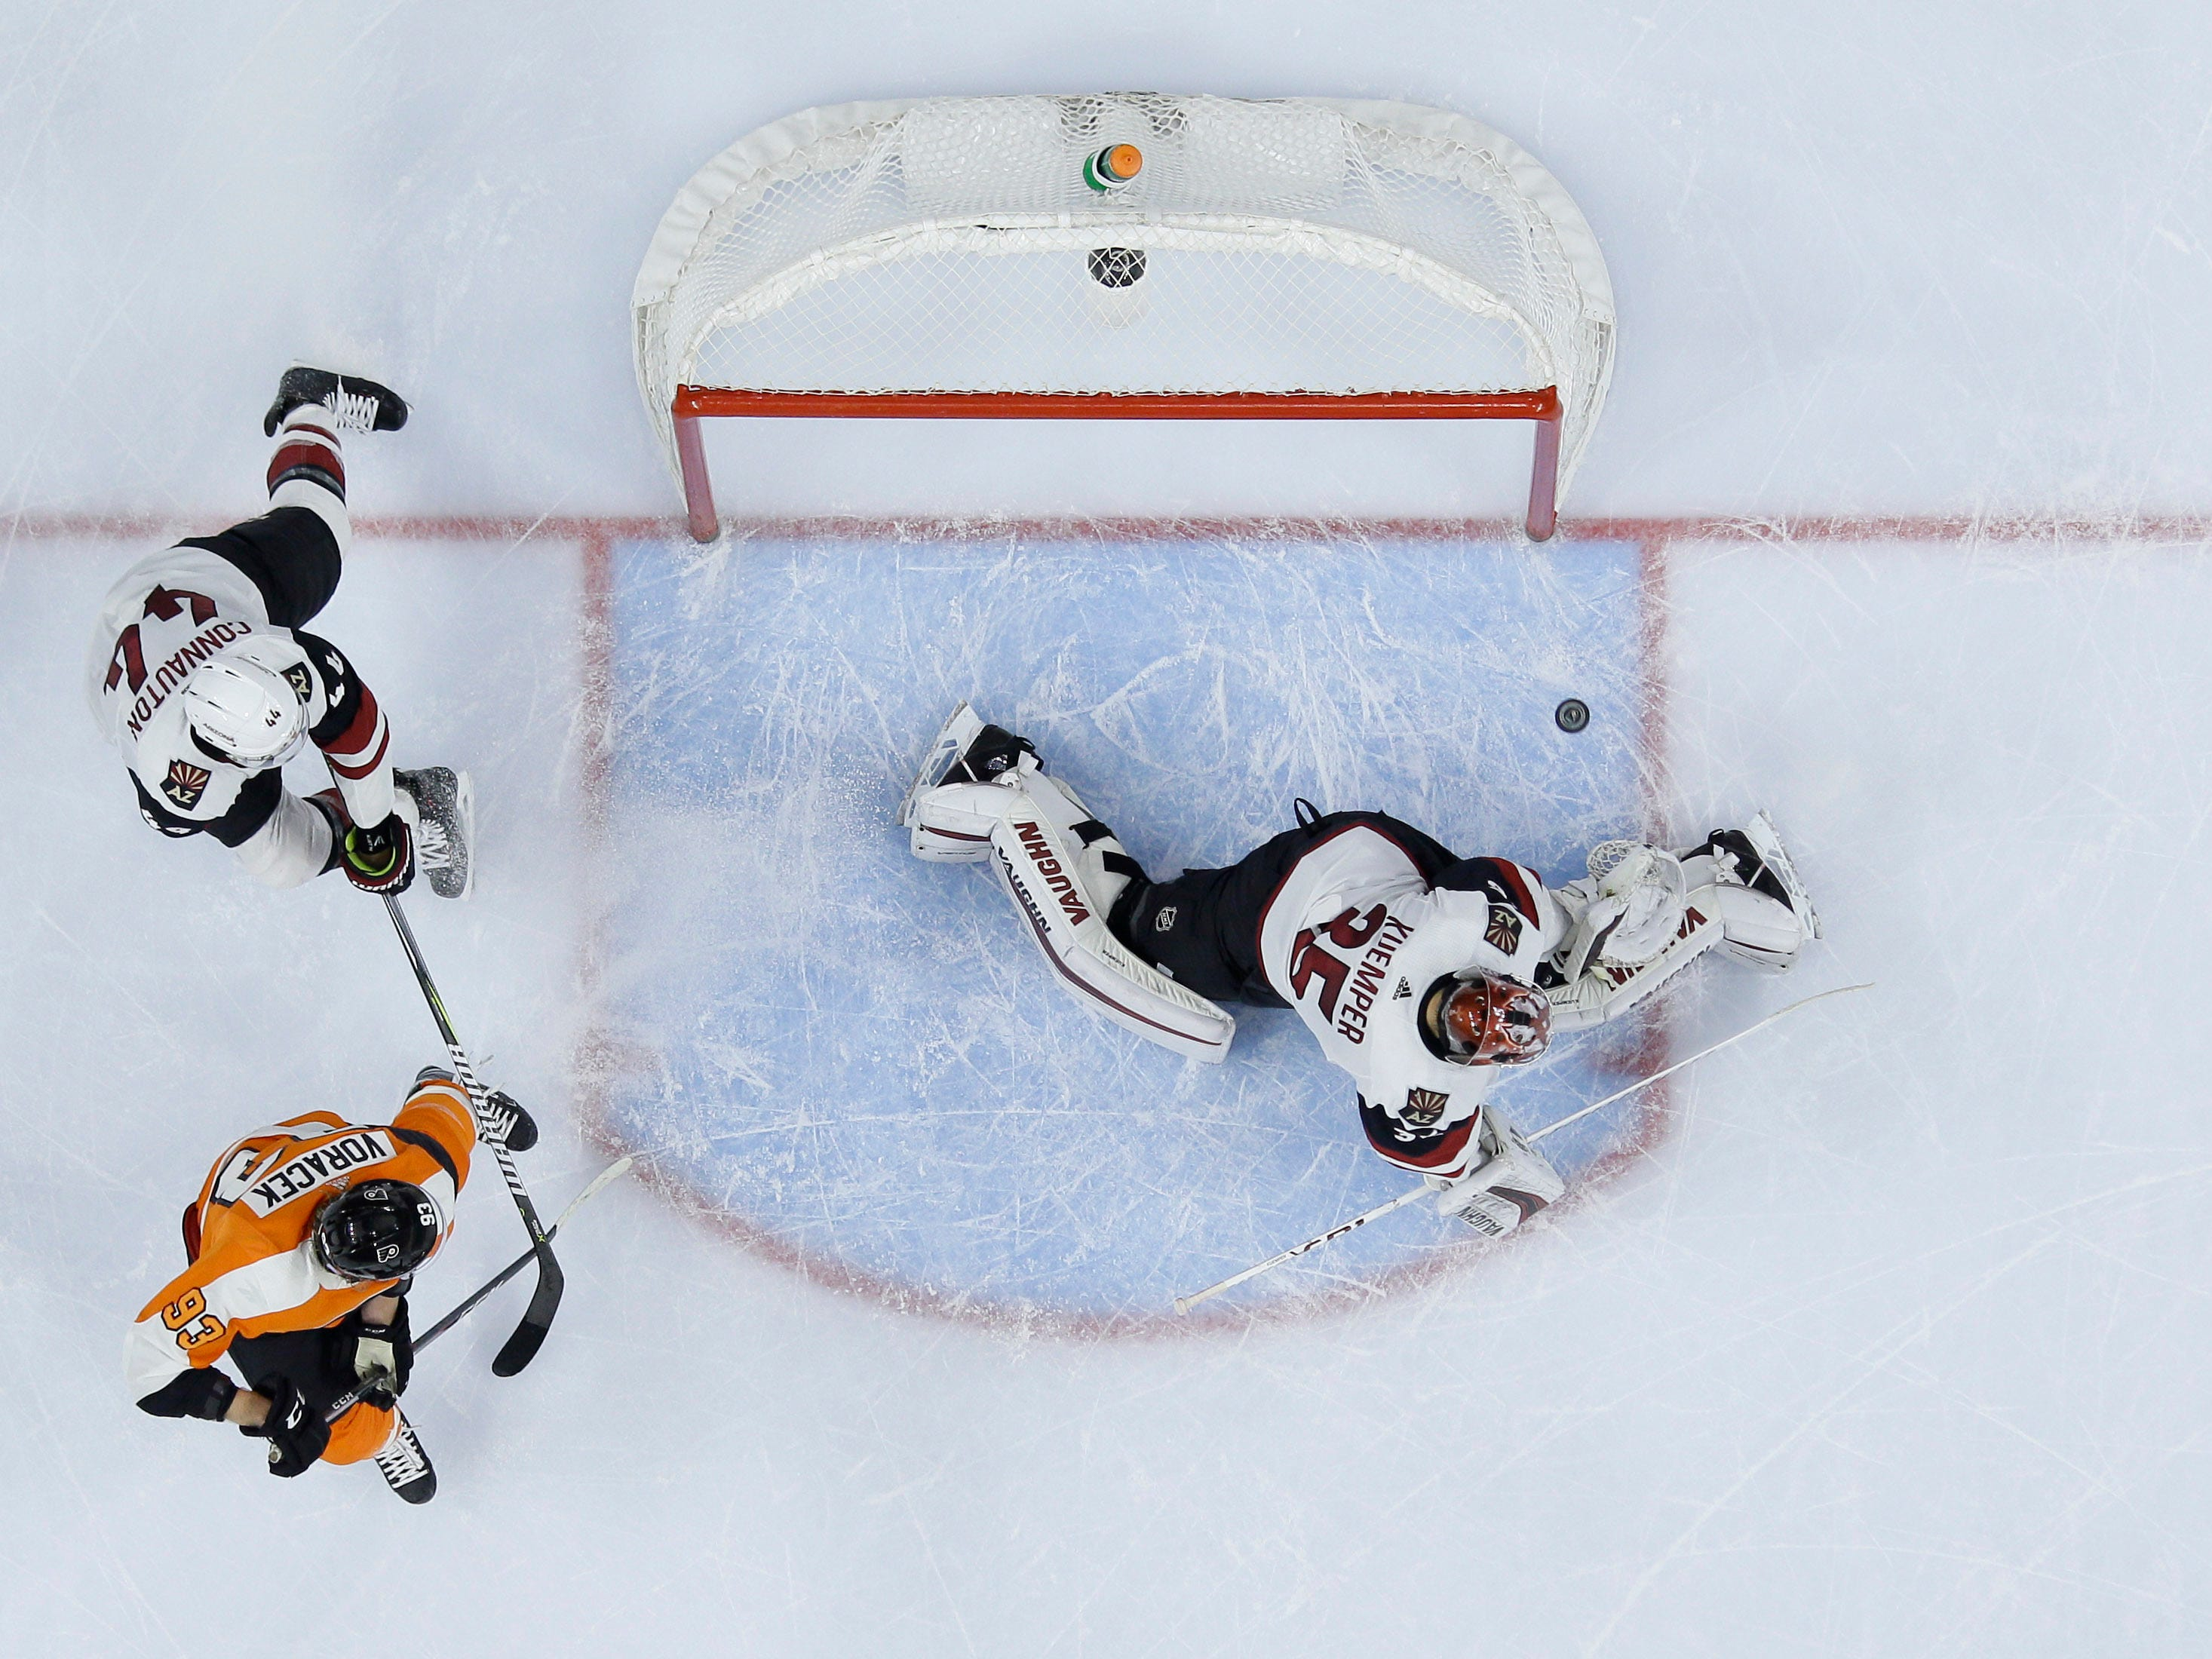 Arizona Coyotes' Darcy Kuemper (35) cannot block the game-winning goal by Philadelphia Flyers' Shayne Gostisbehere as Jakub Voracek (93) and Kevin Connauton (44) look on during overtime in an NHL hockey game, Thursday, Nov. 8, 2018, in Philadelphia. Philadelphia won 5-4. (AP Photo/Matt Slocum)